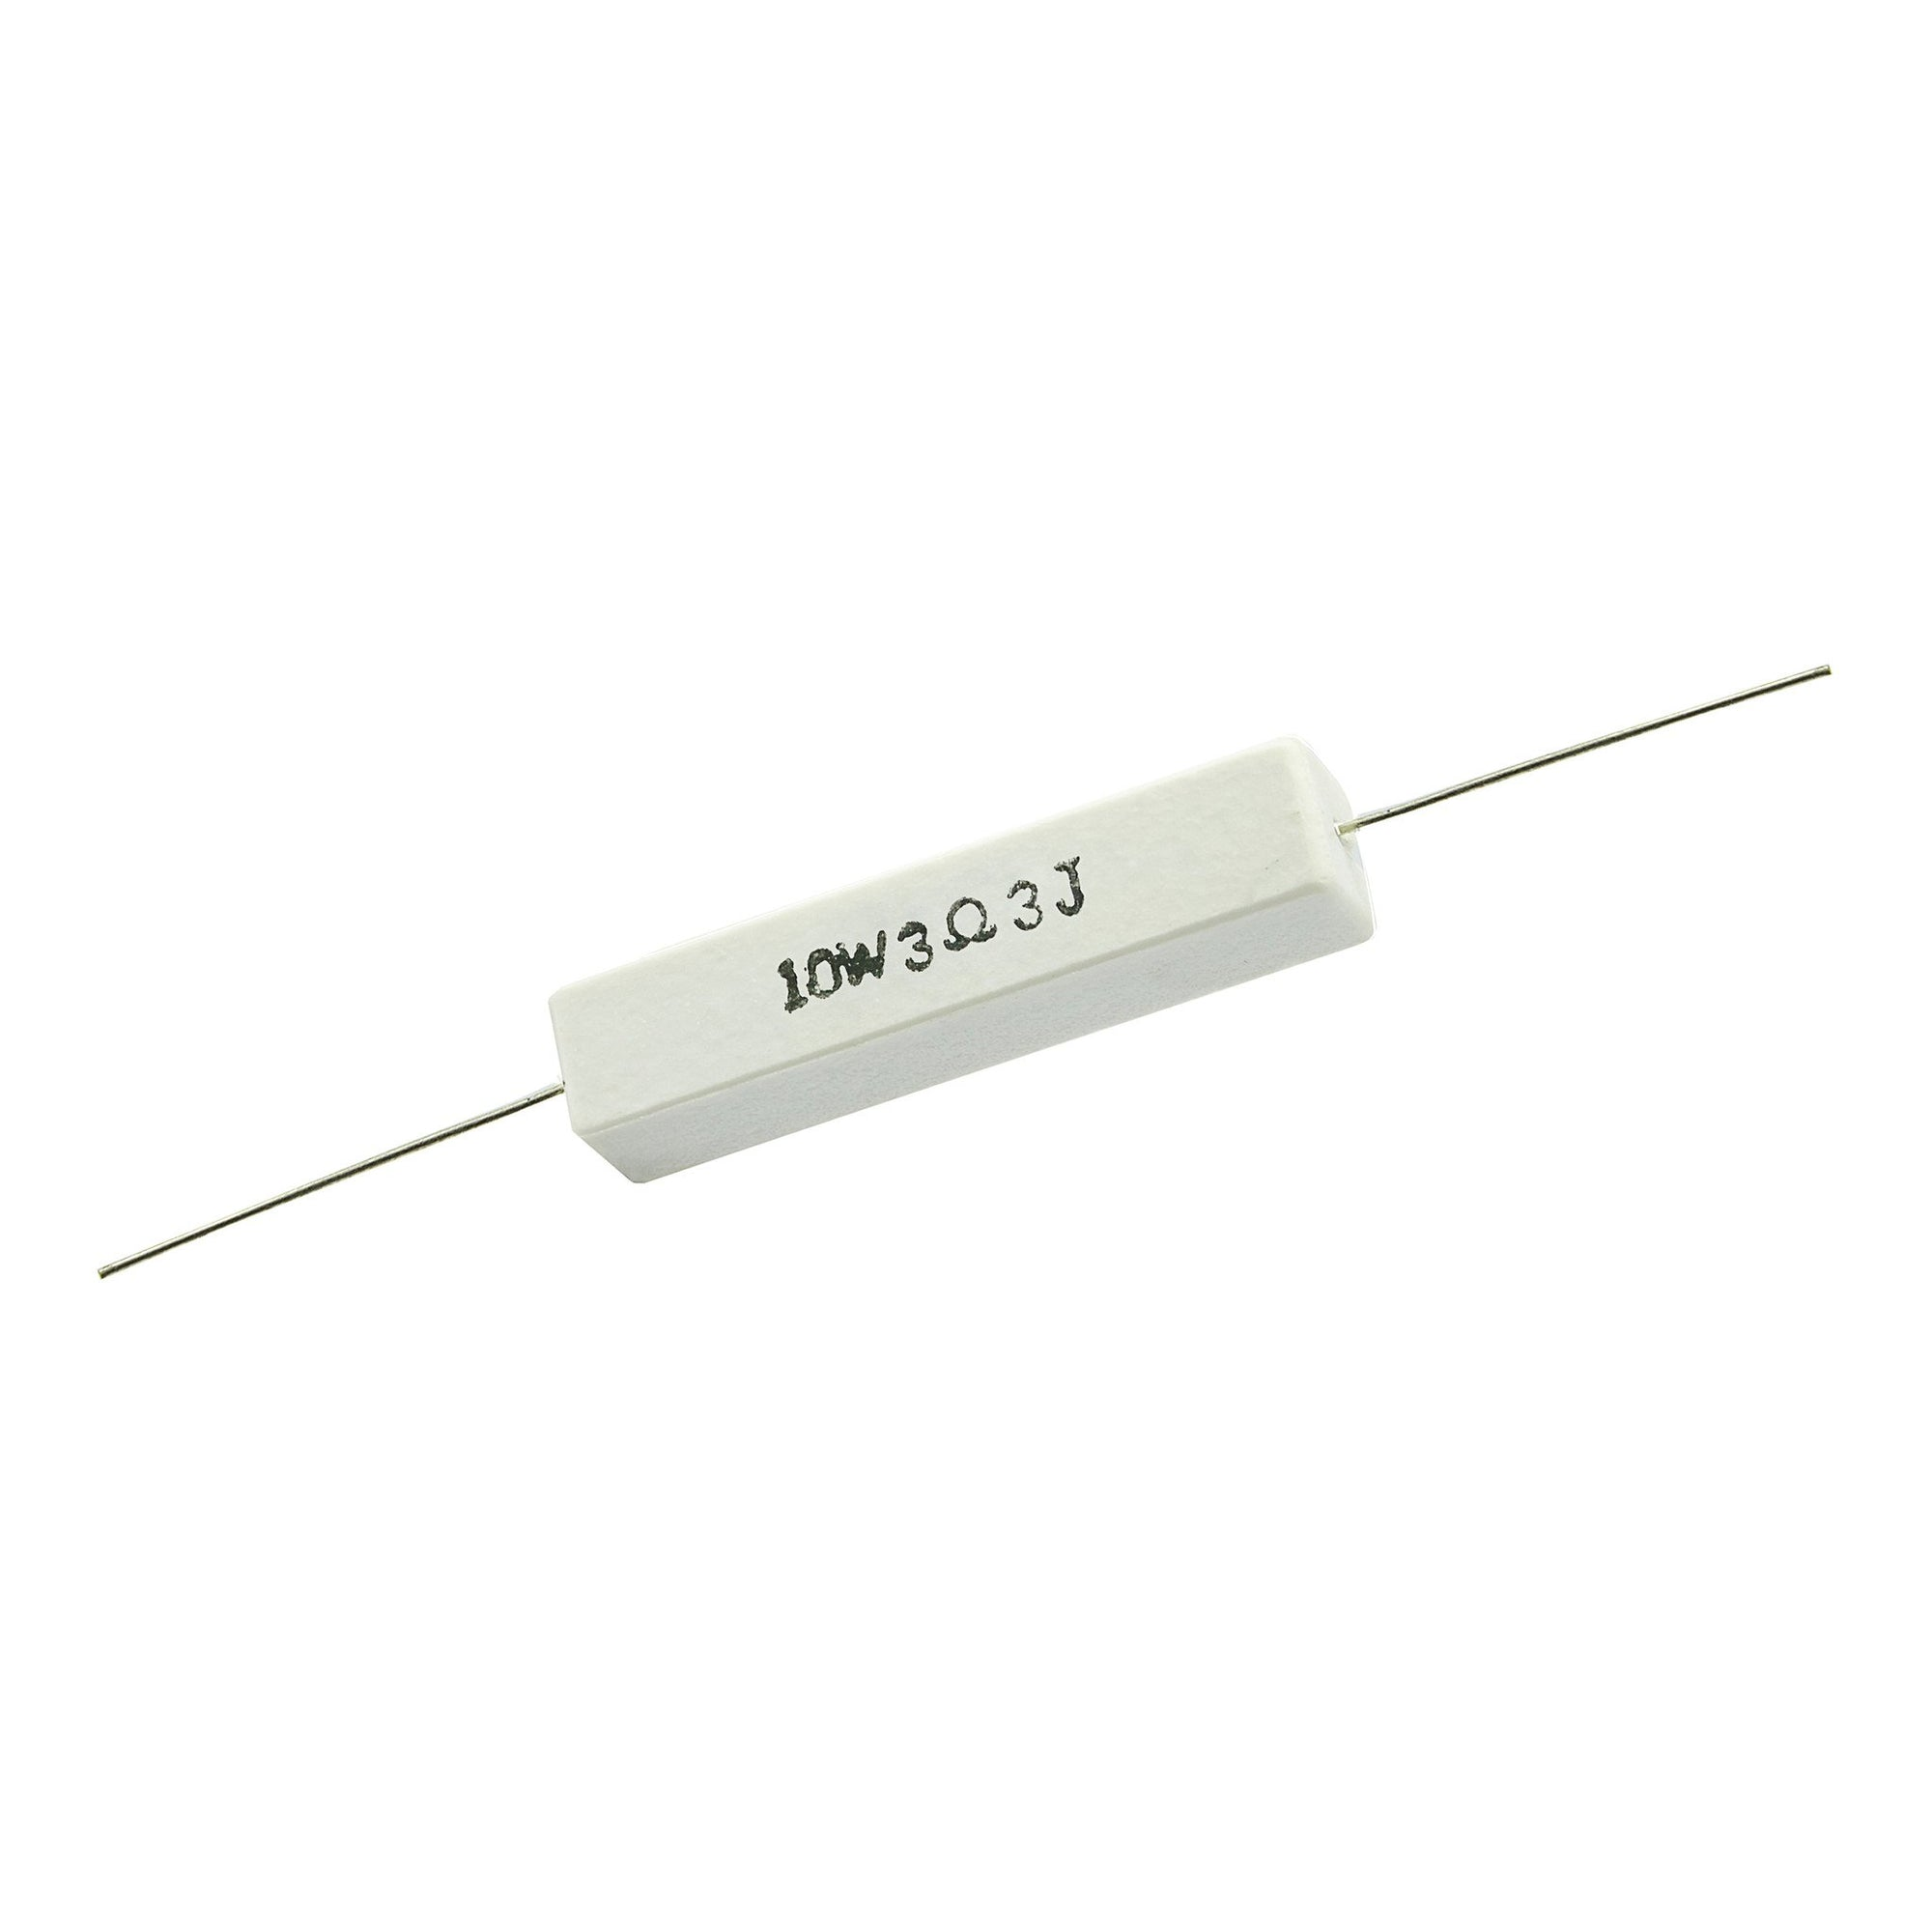 3.3 Ohm 10 Watt 5% Ceramic Wirewound Resistor - Willys-Hifi Ltd